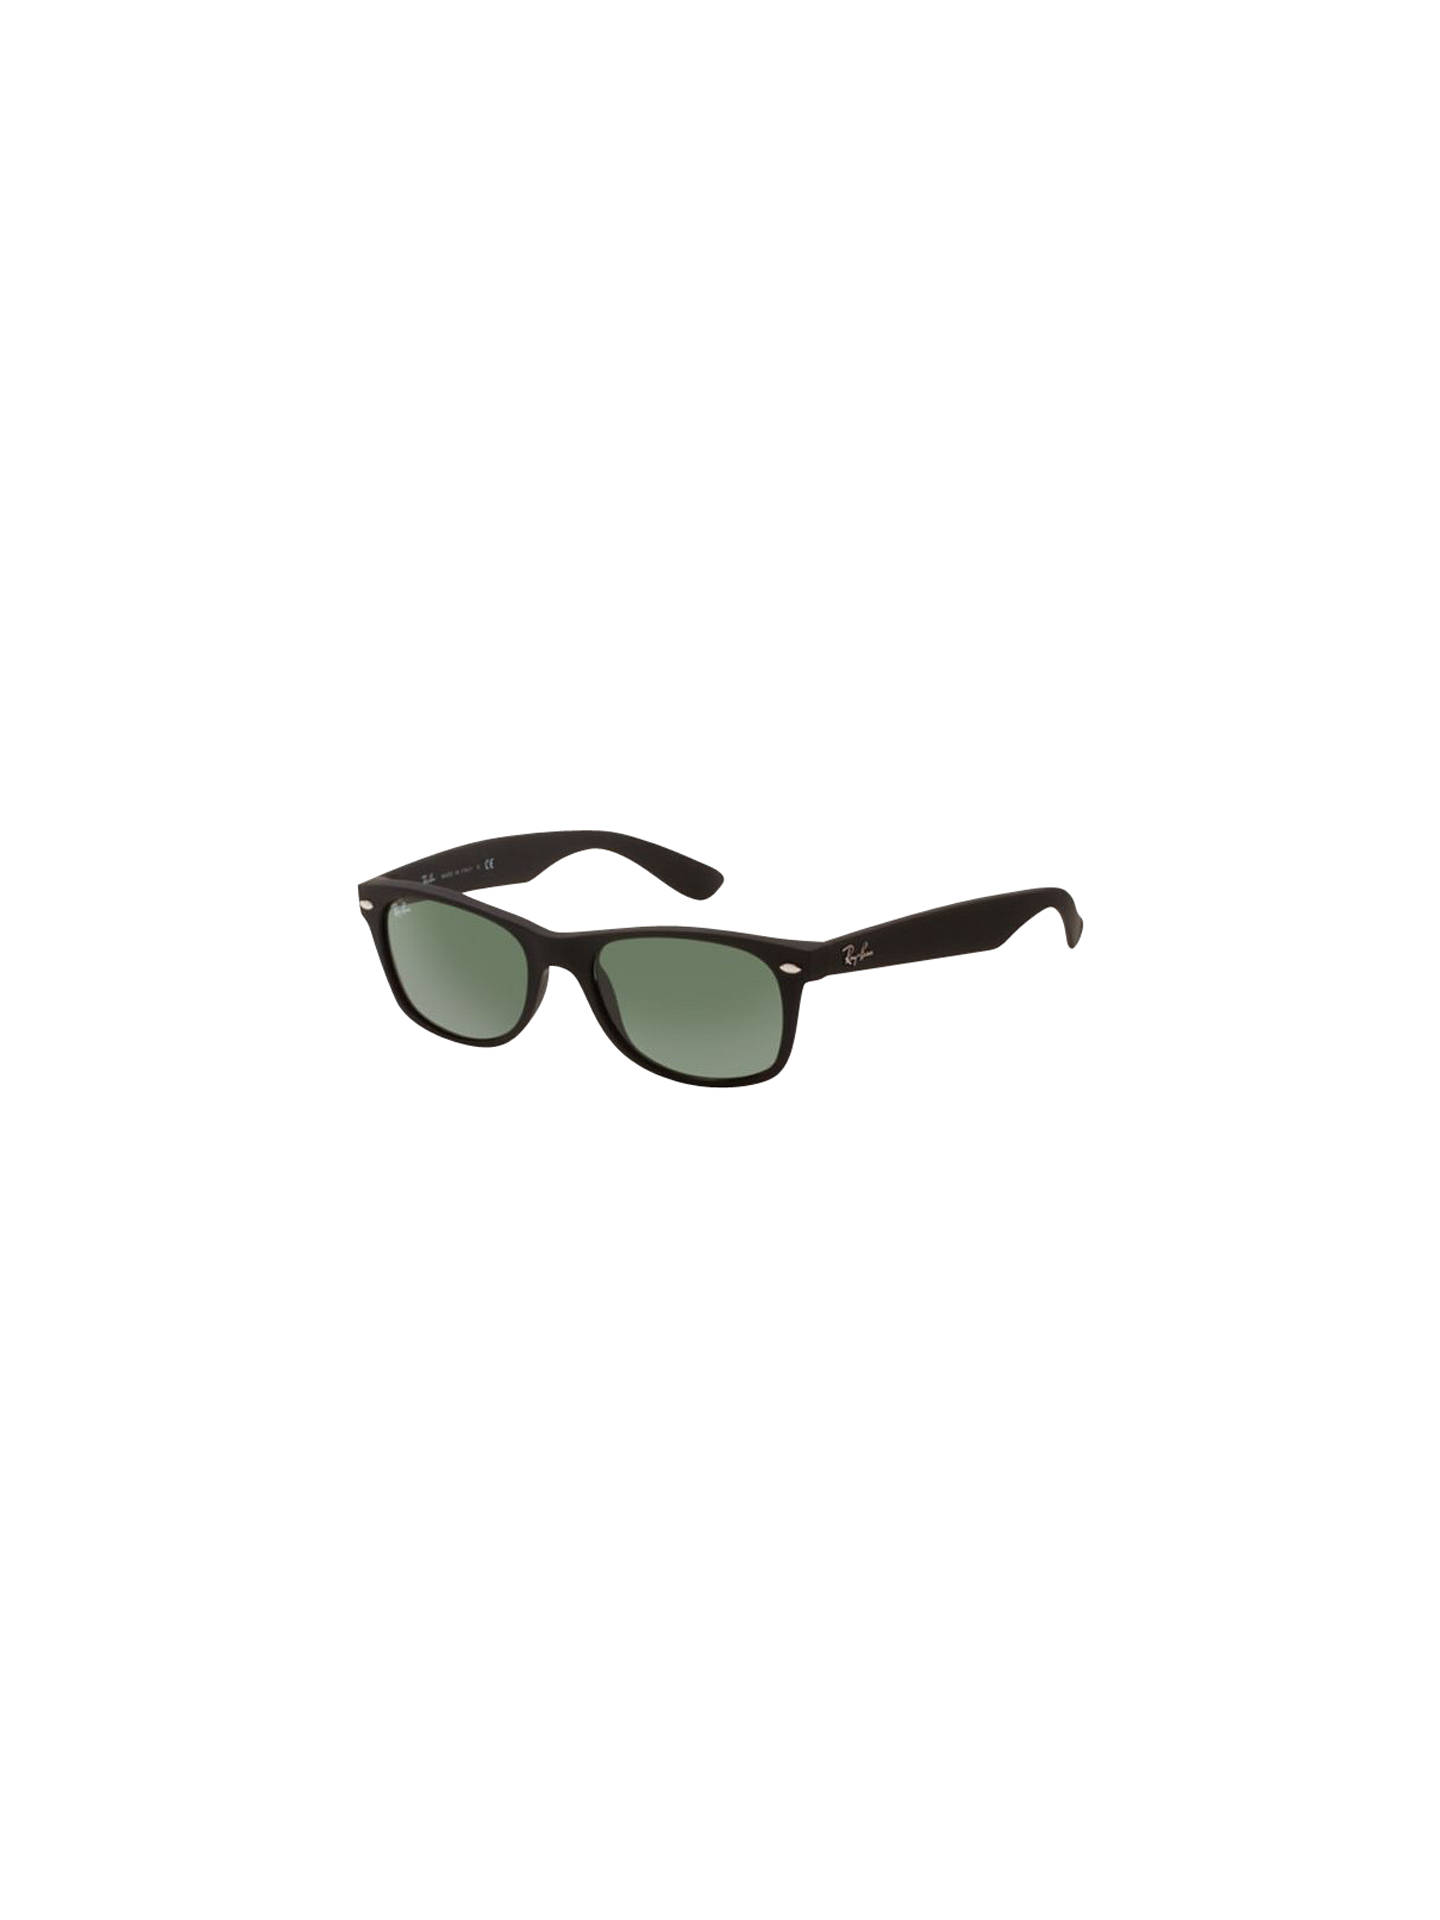 3439789ee9c BuyRay-Ban RB2132 New Wayfarer Sunglasses